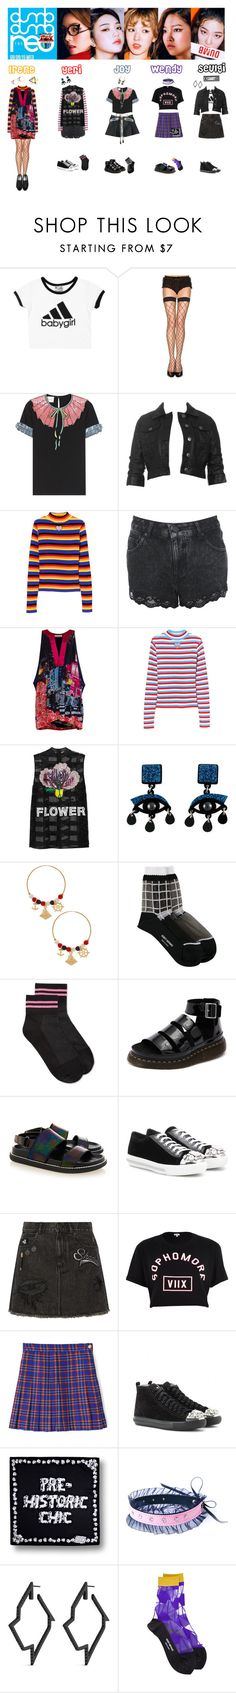 """""""RED VELVET - DUMB DUMB❤️"""" by mabel-2310 ❤ liked on Polyvore featuring Gucci, BB Dakota, UNIF, Miss Selfridge, House of Cannon, Christopher Kane, Jennifer Loiselle, Chanel, Issey Miyake and Hue"""